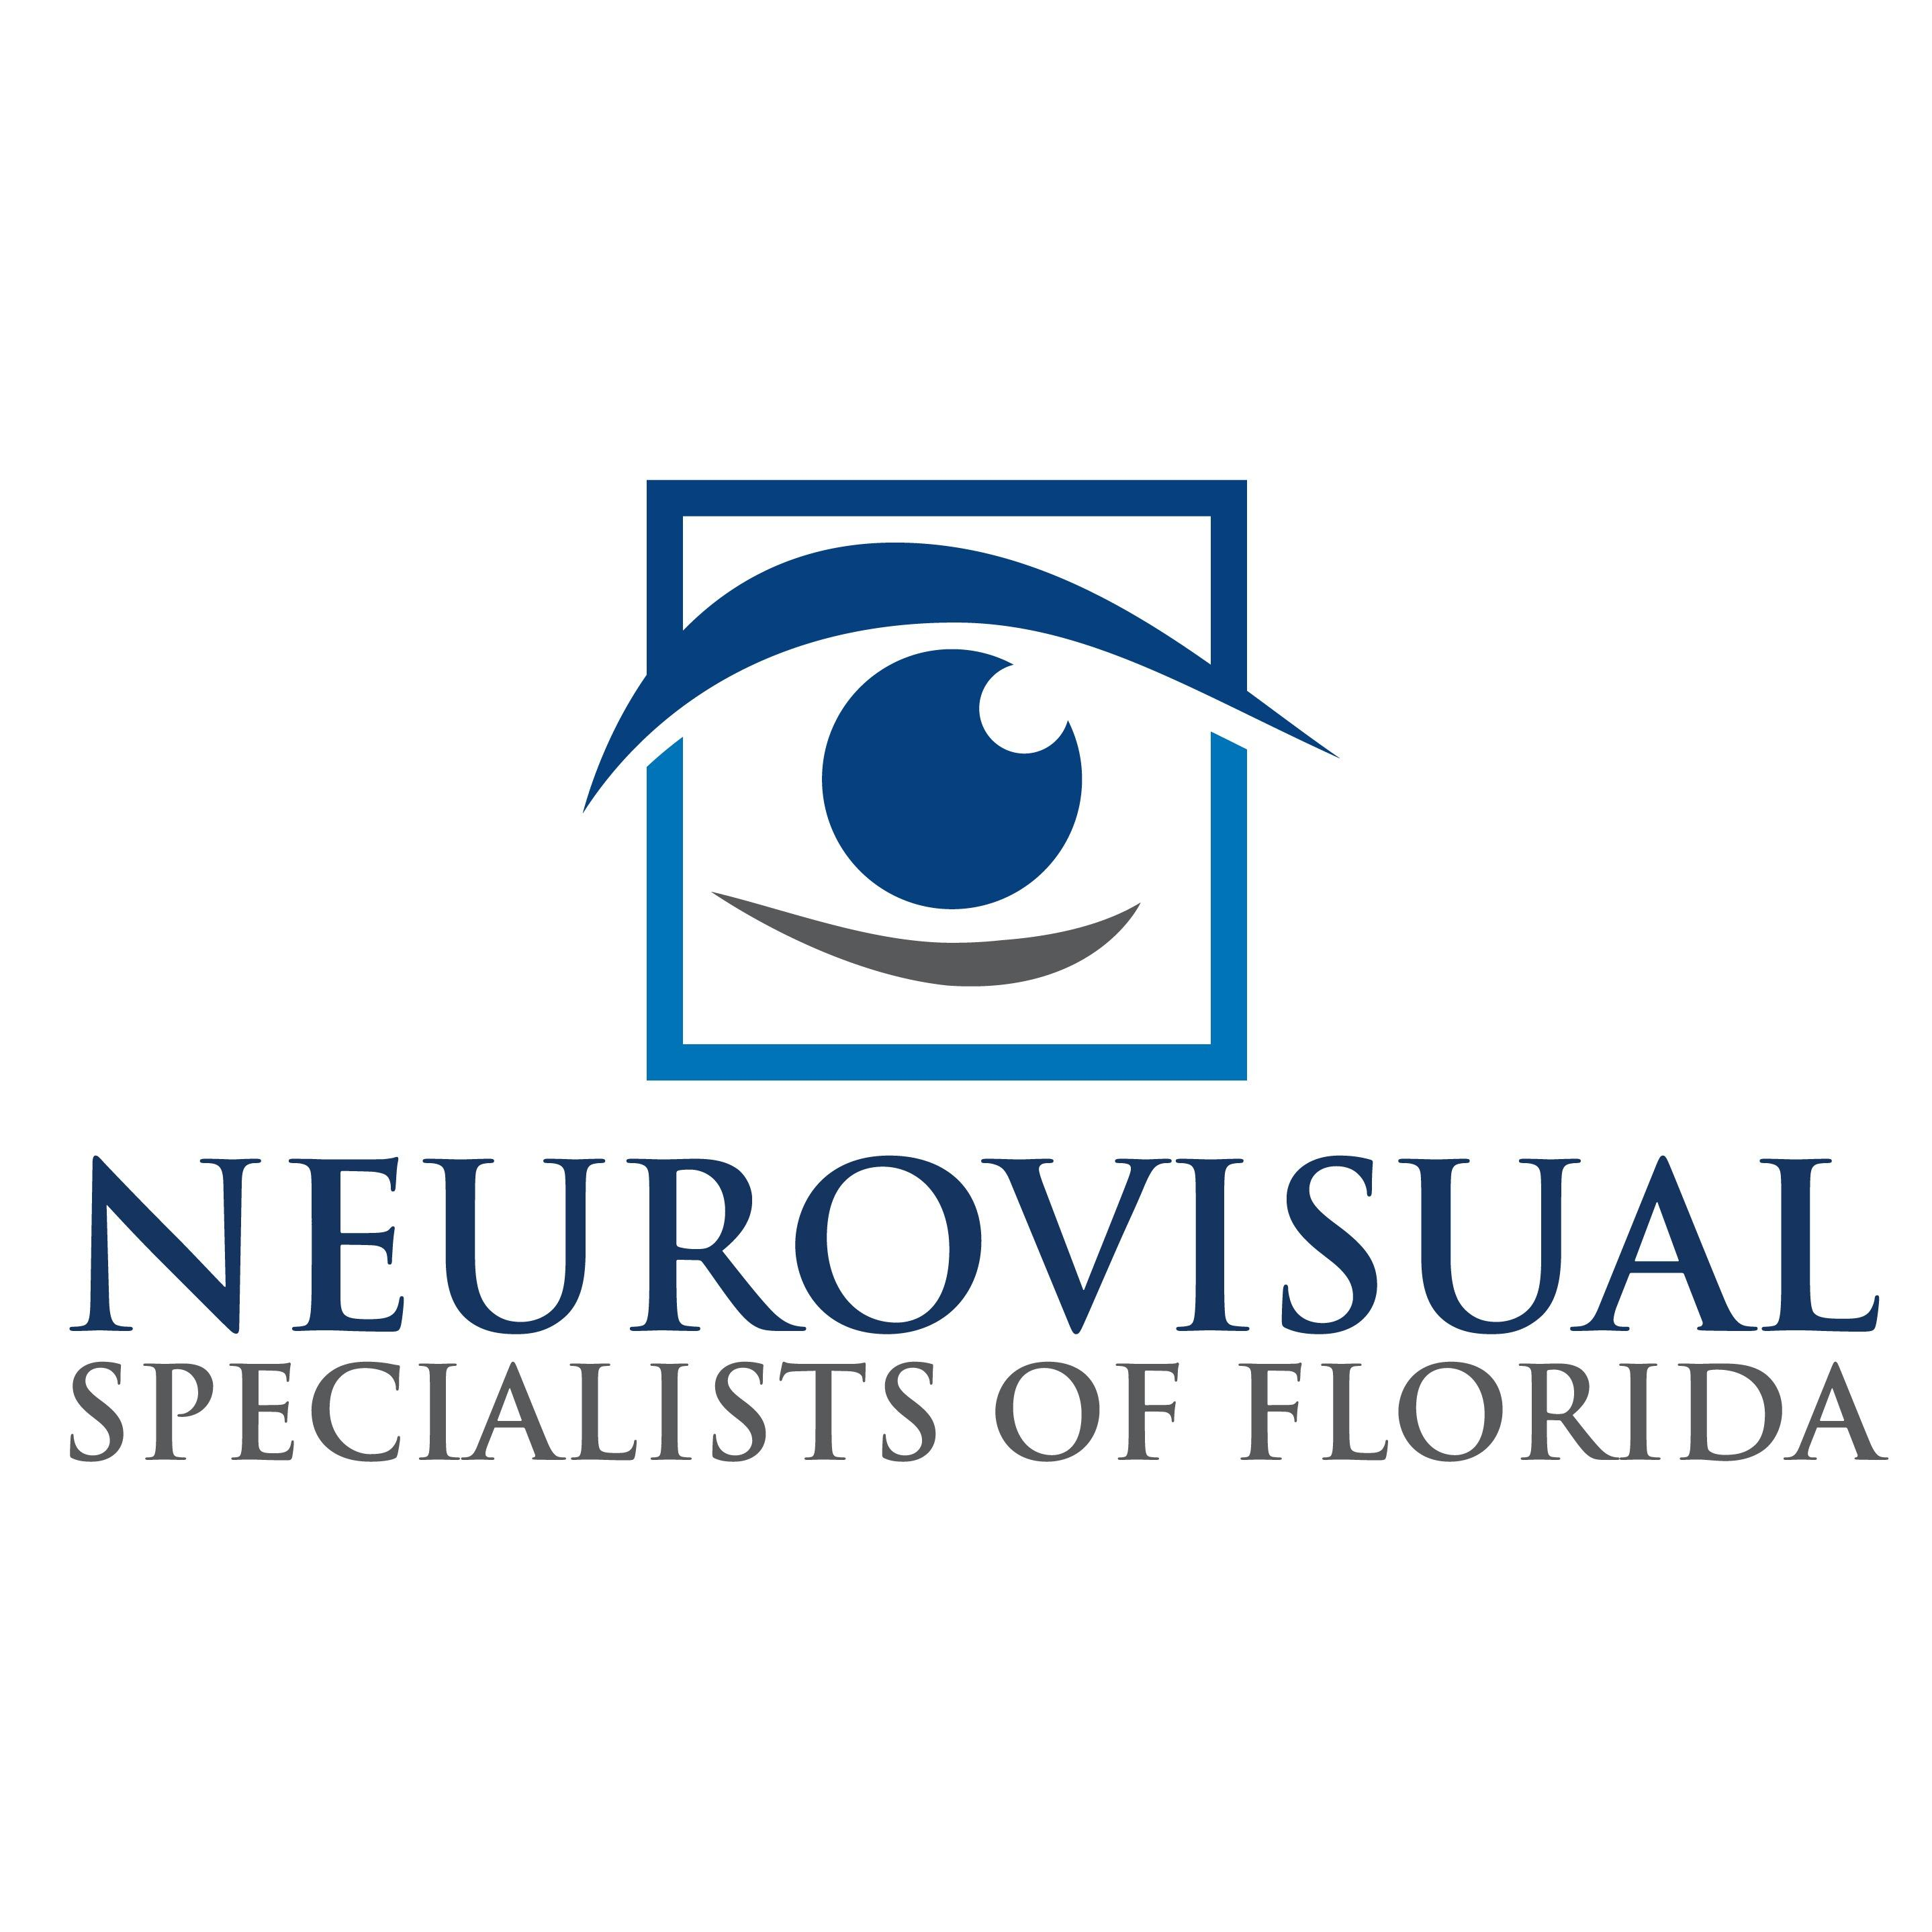 NeuroVisual Specialists of Florida and iSee VisionCare